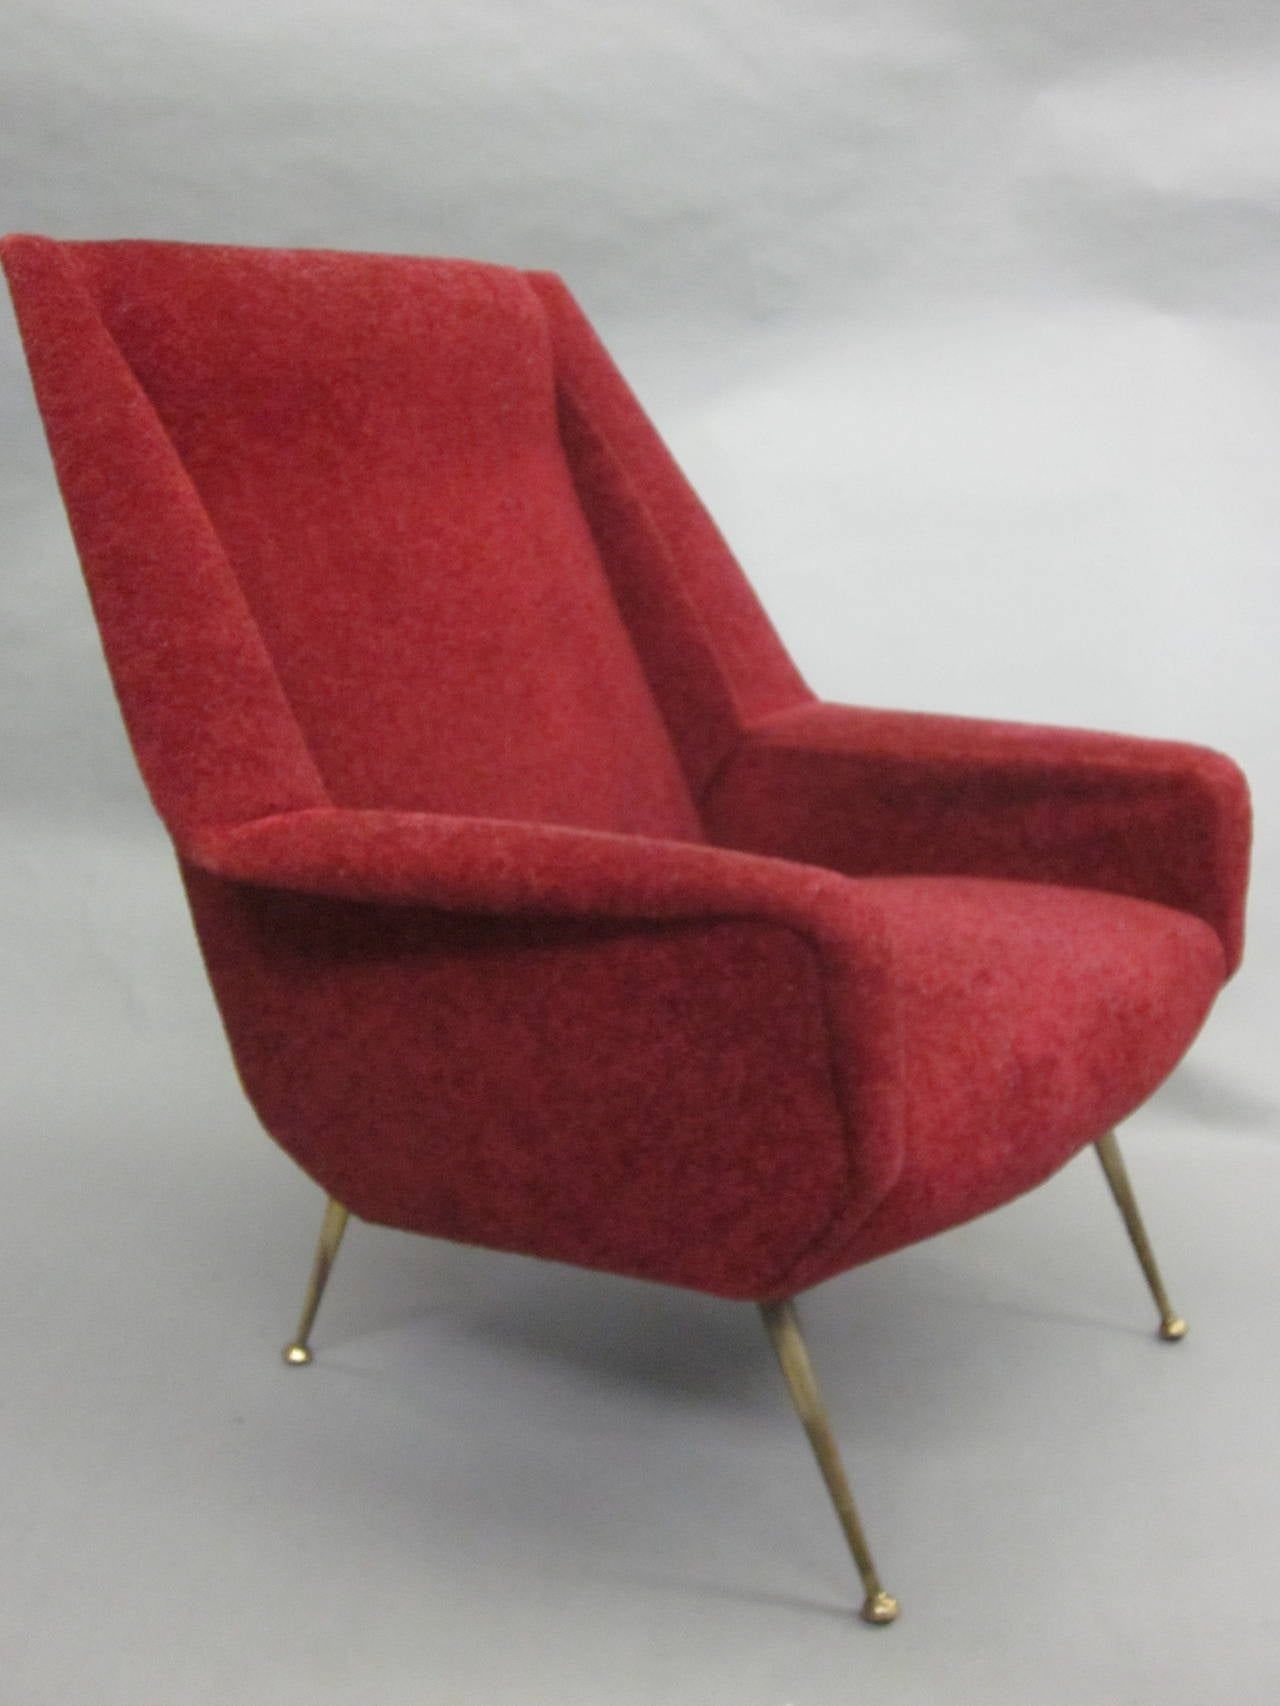 Pair of Italian Mid-Century Modern Lounge Chairs Attr. Gianfranco Frattini, 1950 2